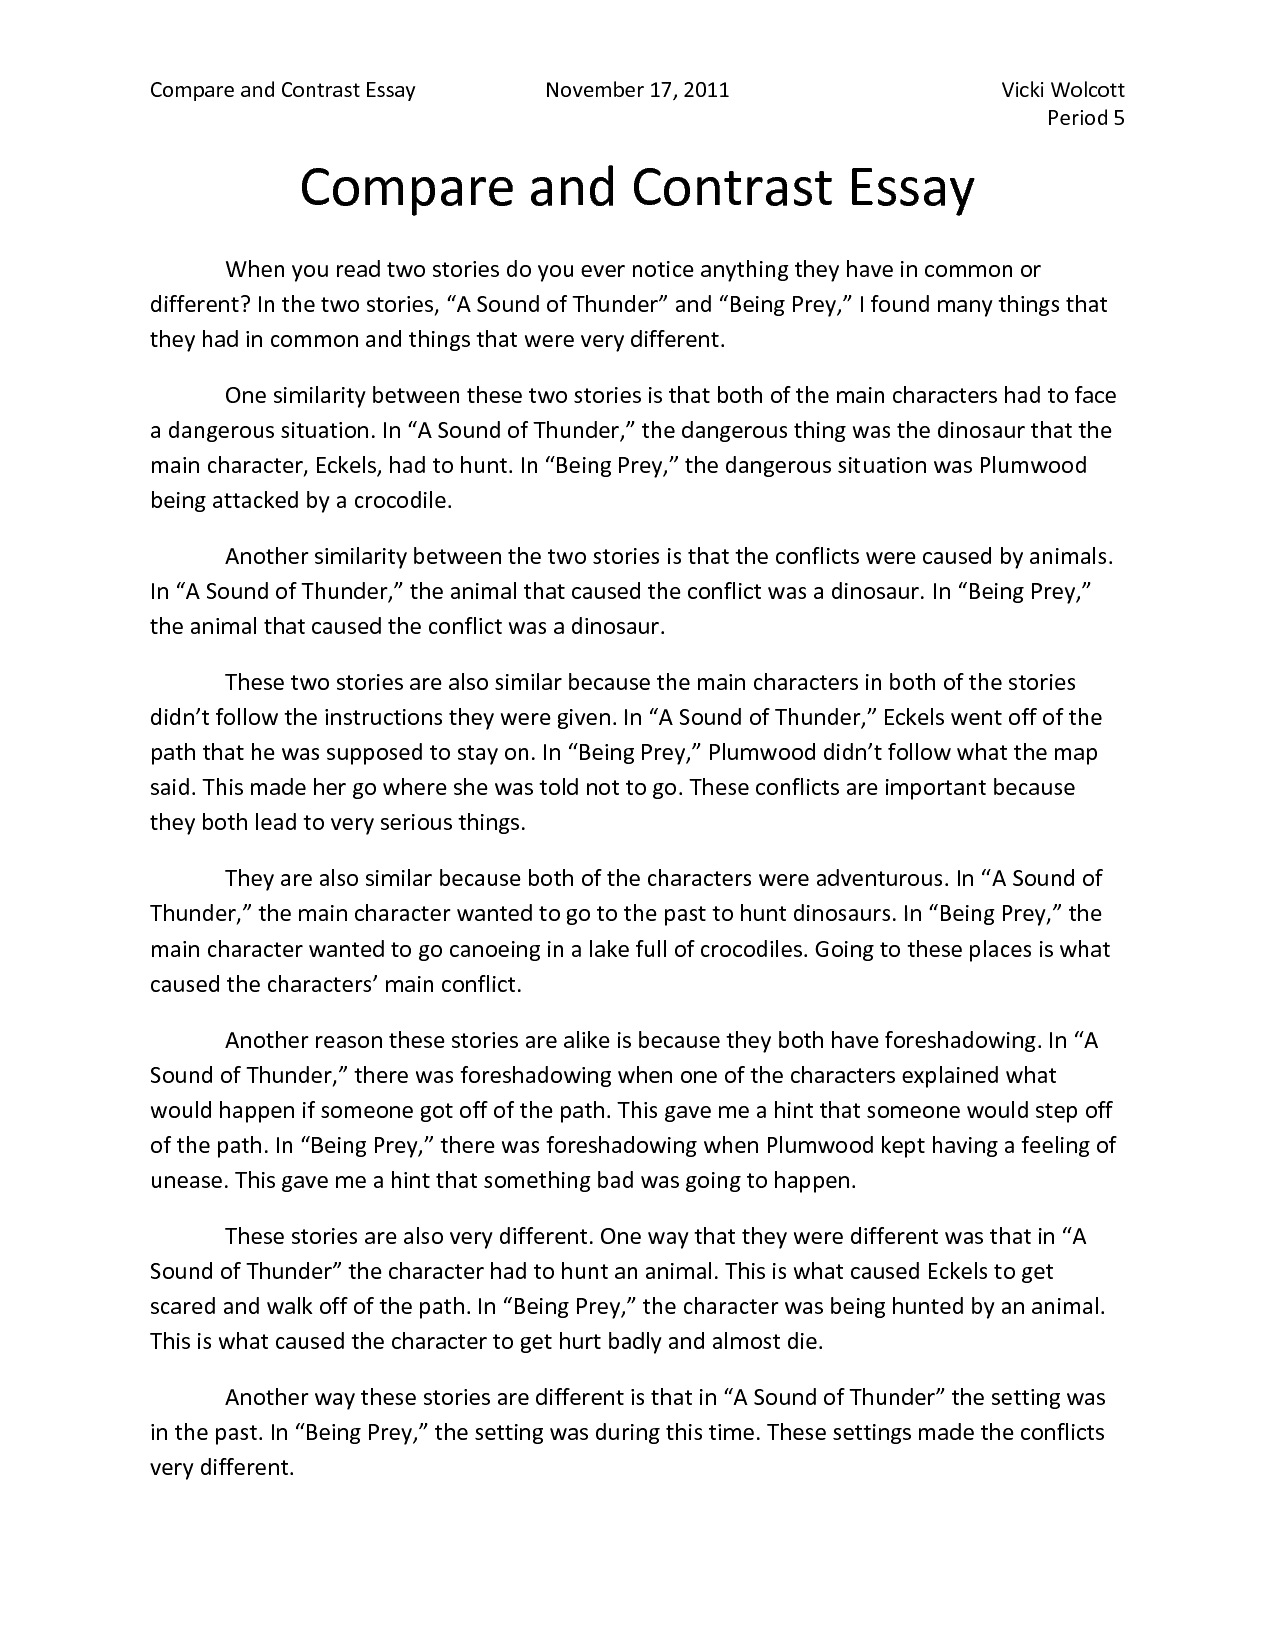 Compare and contrast essay examples college outline